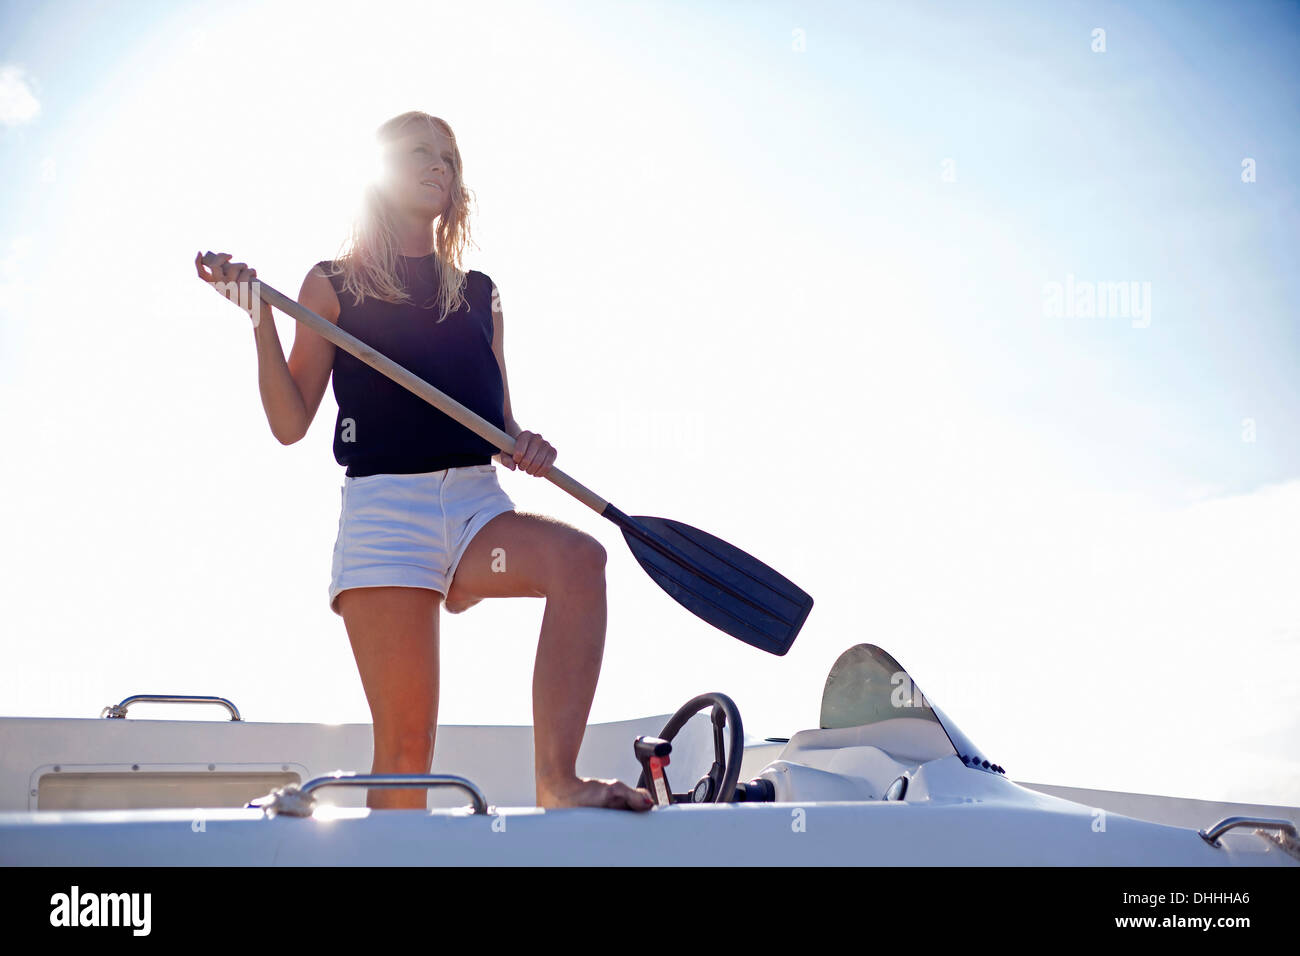 Woman holding oar on yacht, Pays de Galles, Royaume-Uni Photo Stock